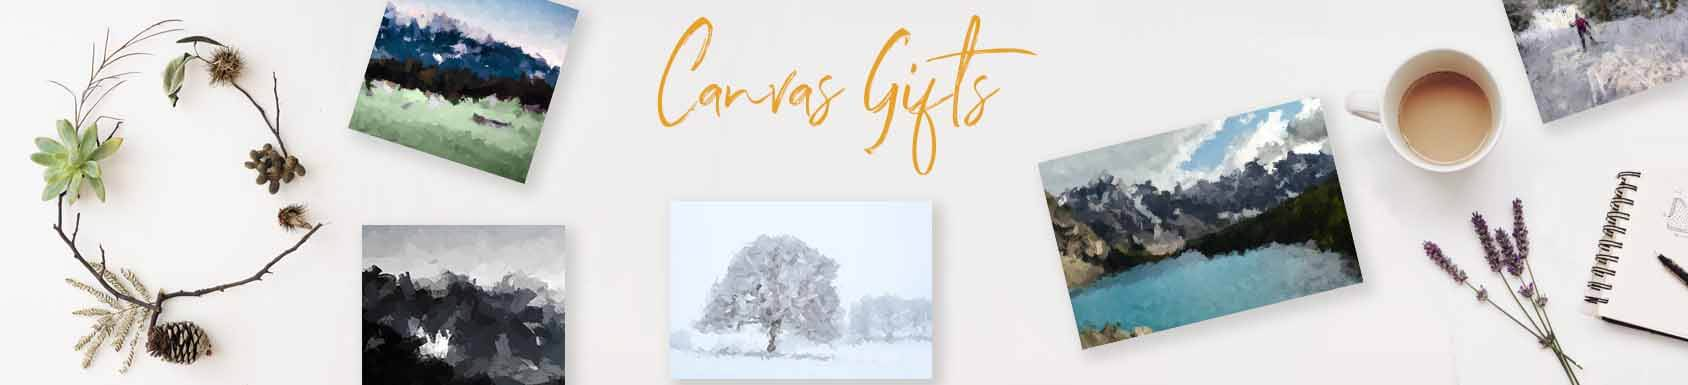 Christmas Canvas Gifts For Her Gifts For Him Ultimate Gift Guide